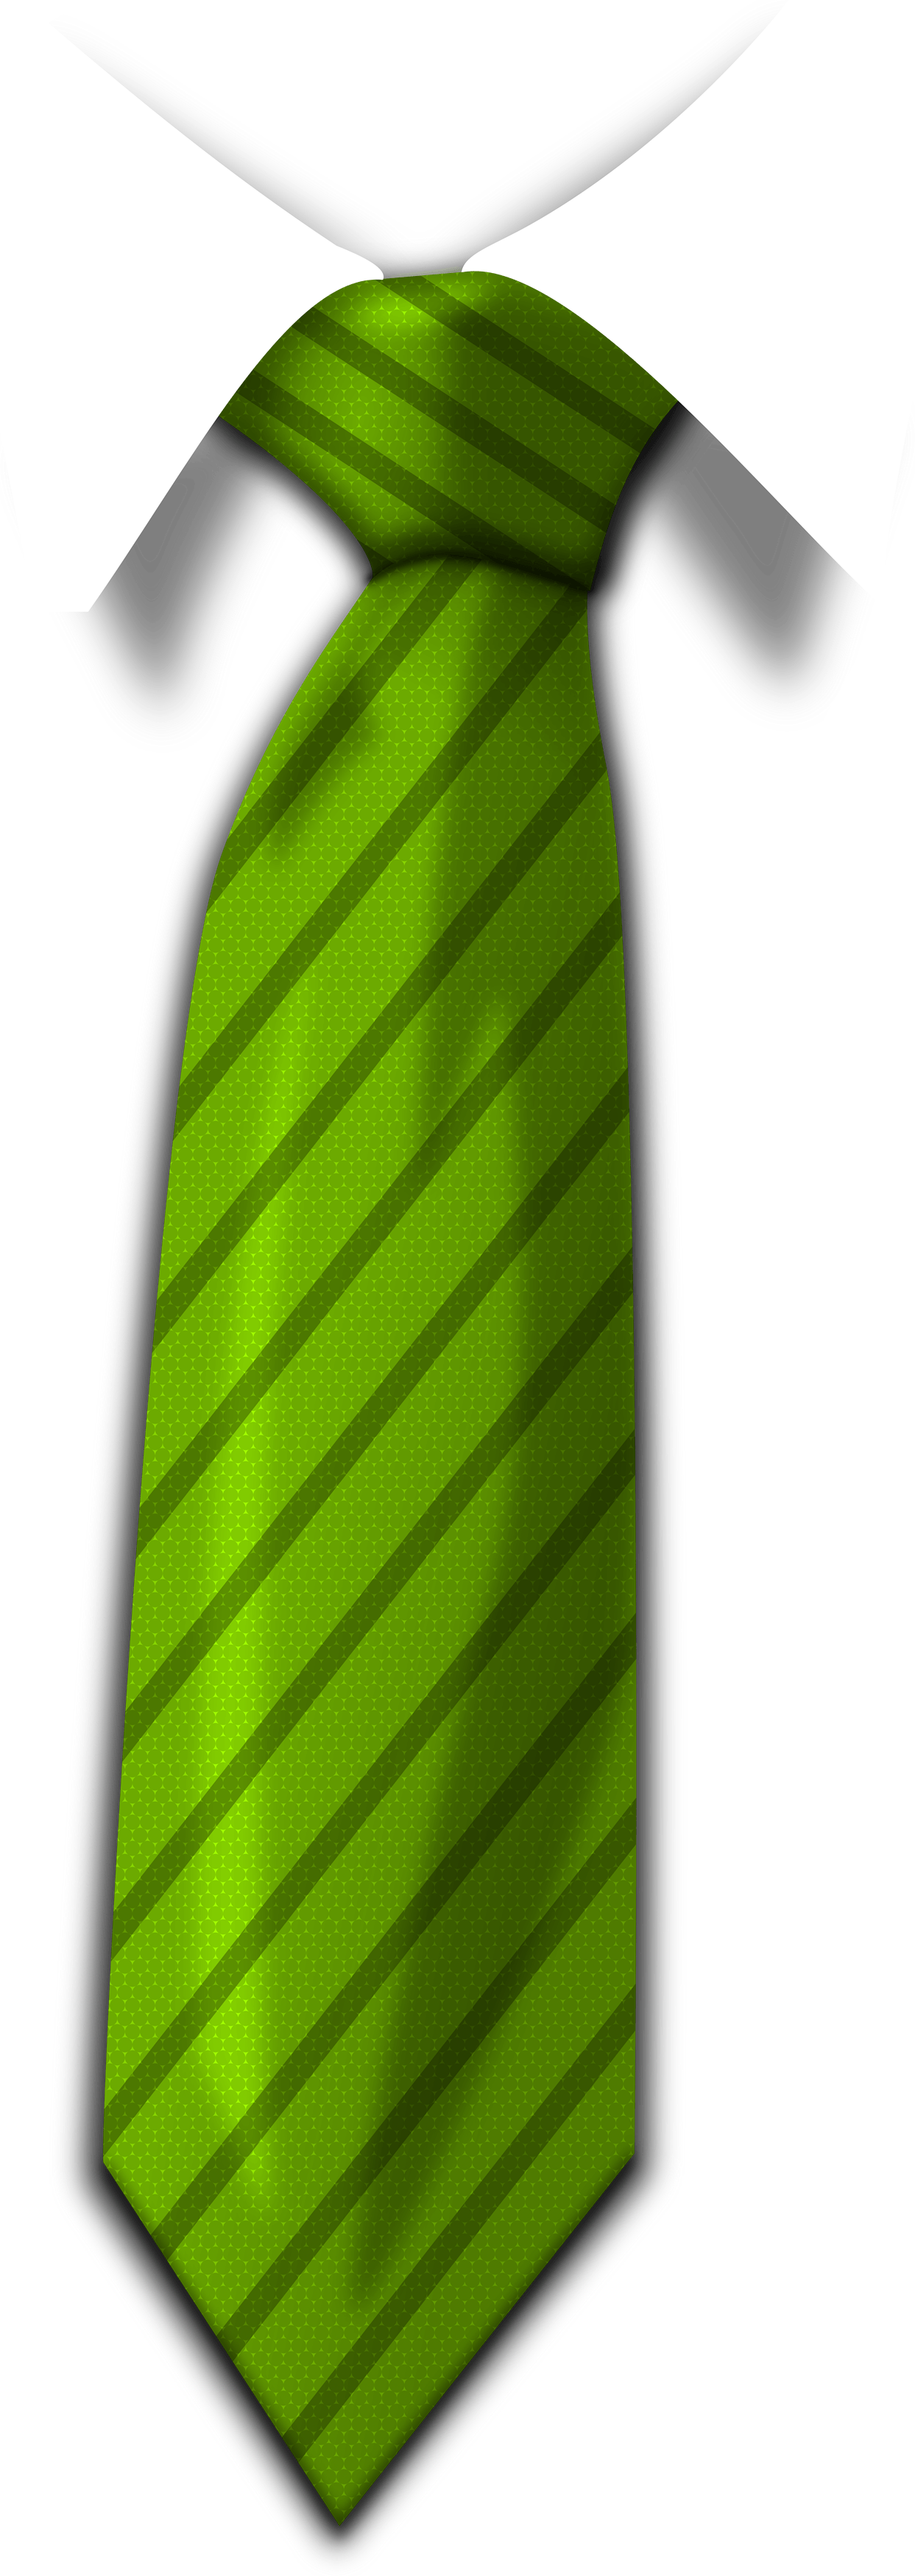 Green Tie Png Image PNG Image